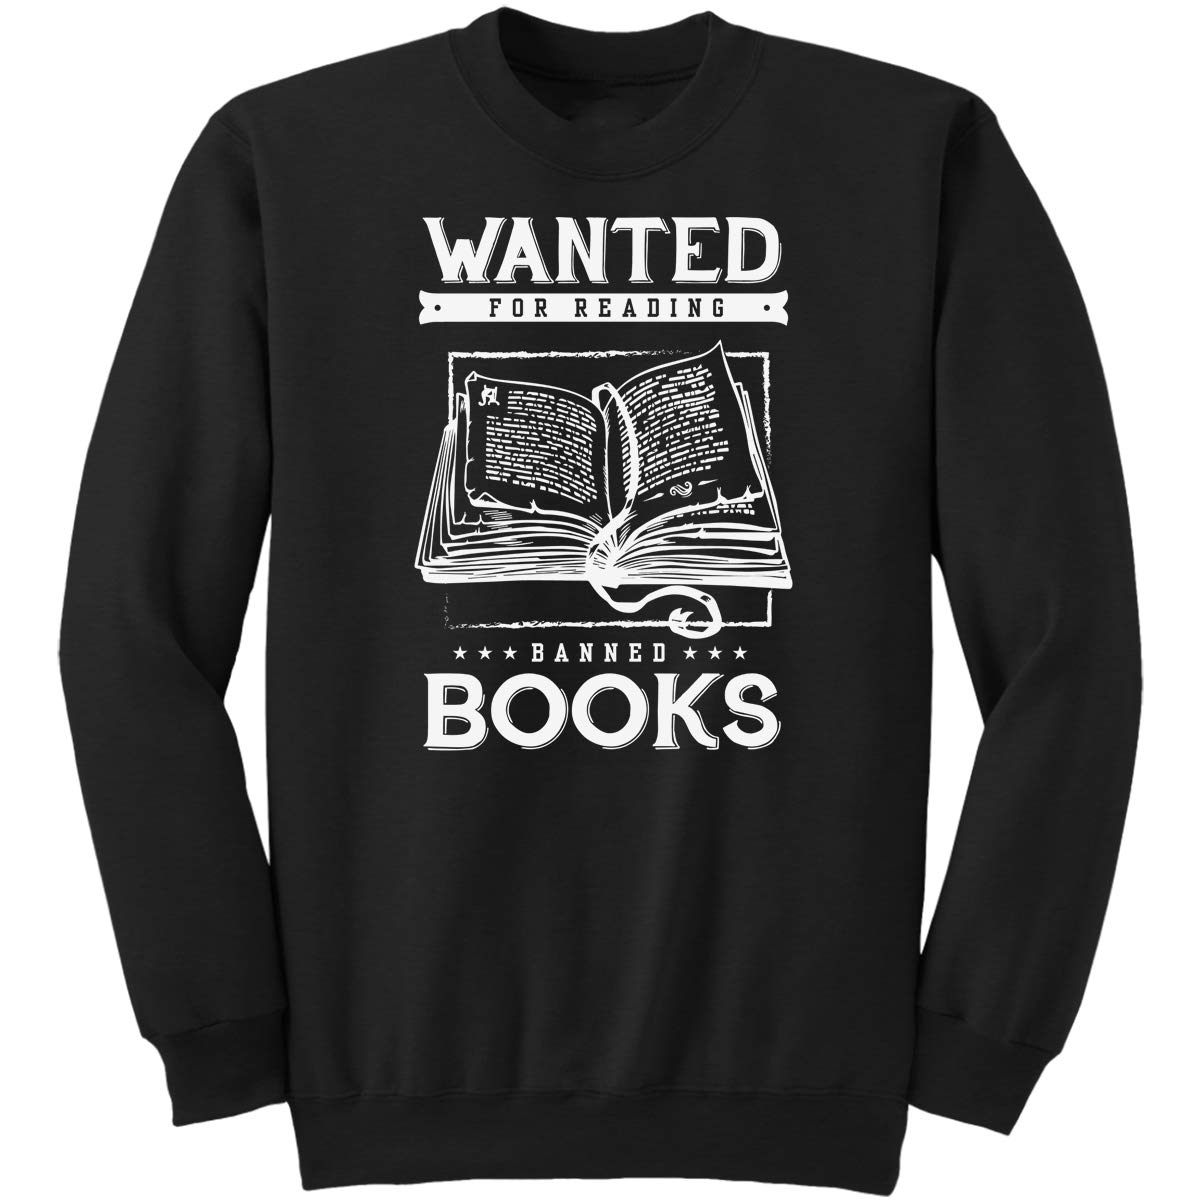 Wanted for Reading Banned Books Funny Gifts Idea Jokes for Mens Wome Sweatshirt